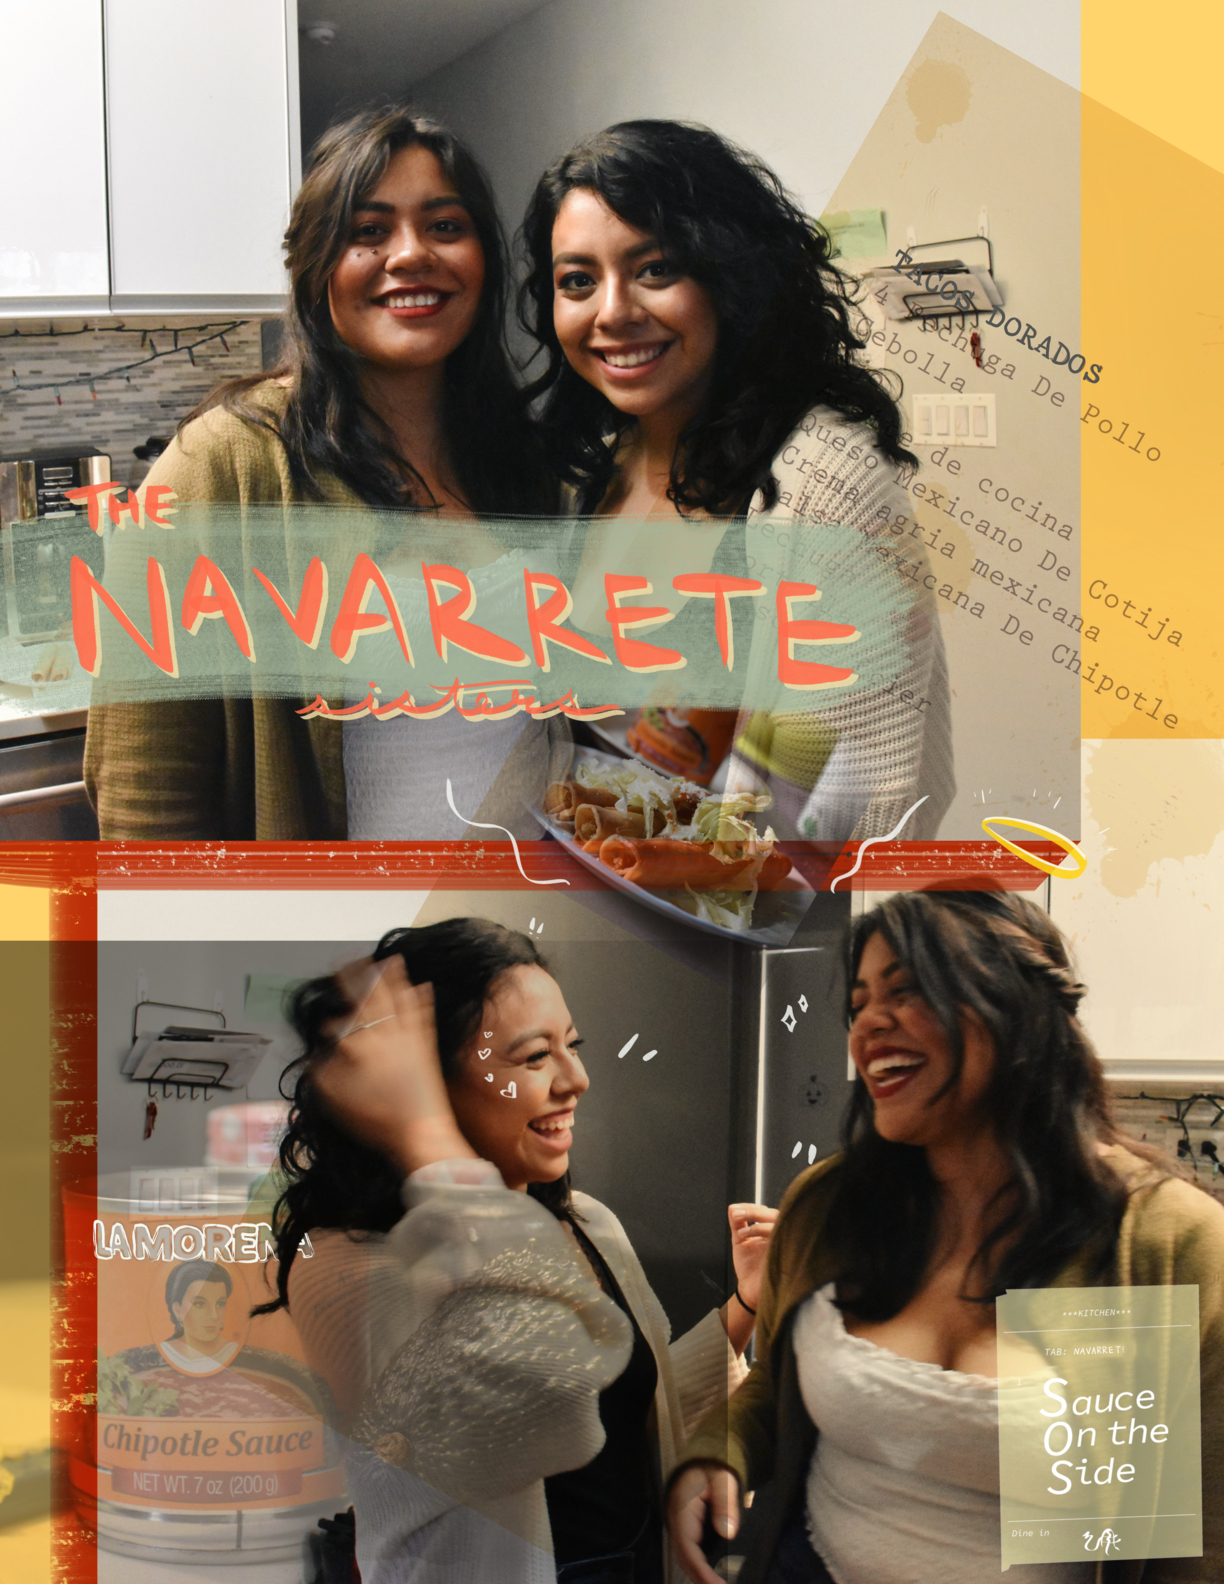 Sauce on the Side: the Navarrete sisters - Mexican American sister Andrea and Bernice Navarrete bring dishes to AKIN and memories of their mother making these dishes growing up and bringing them to their elementary school.